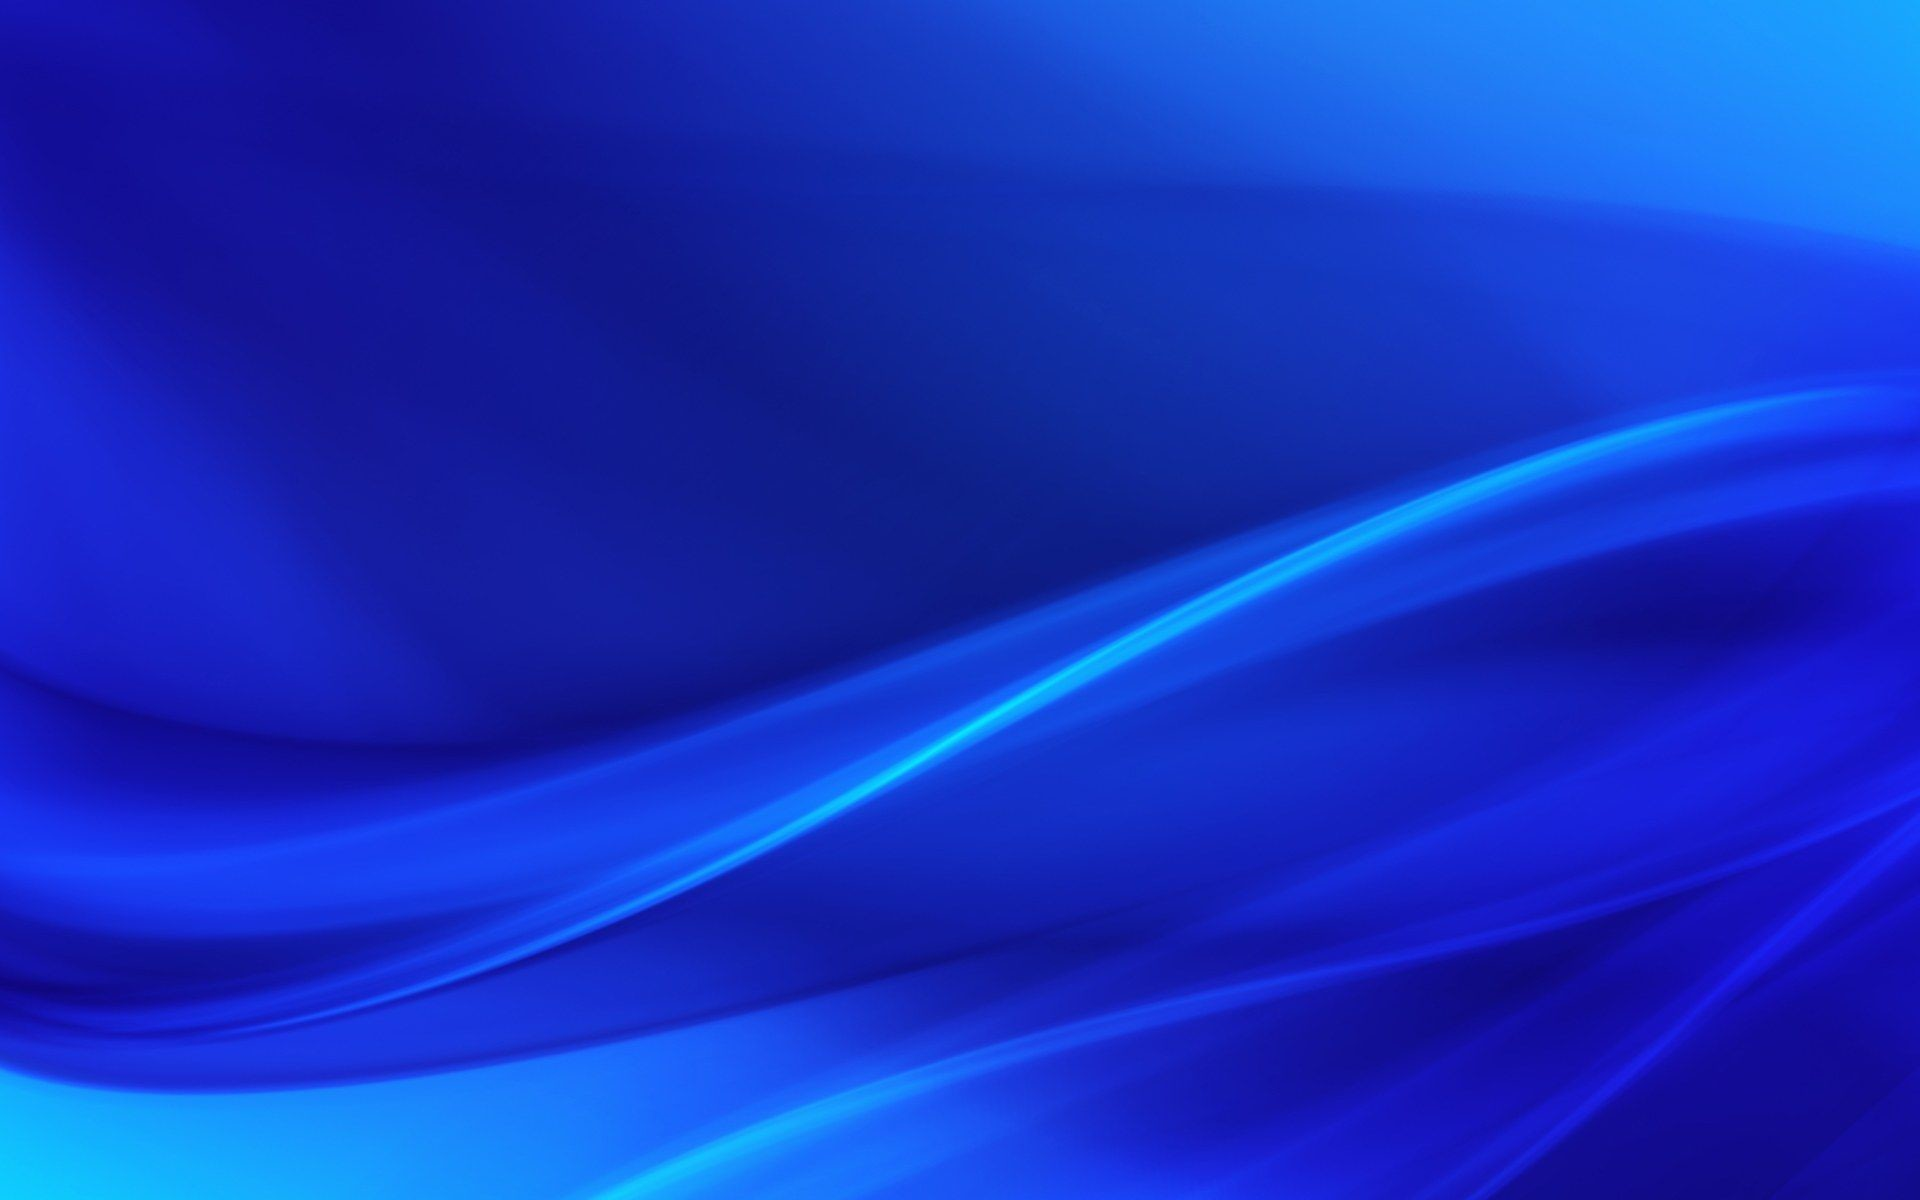 1920x1200 Light Blue Wallpaper Backgrounds Free Download